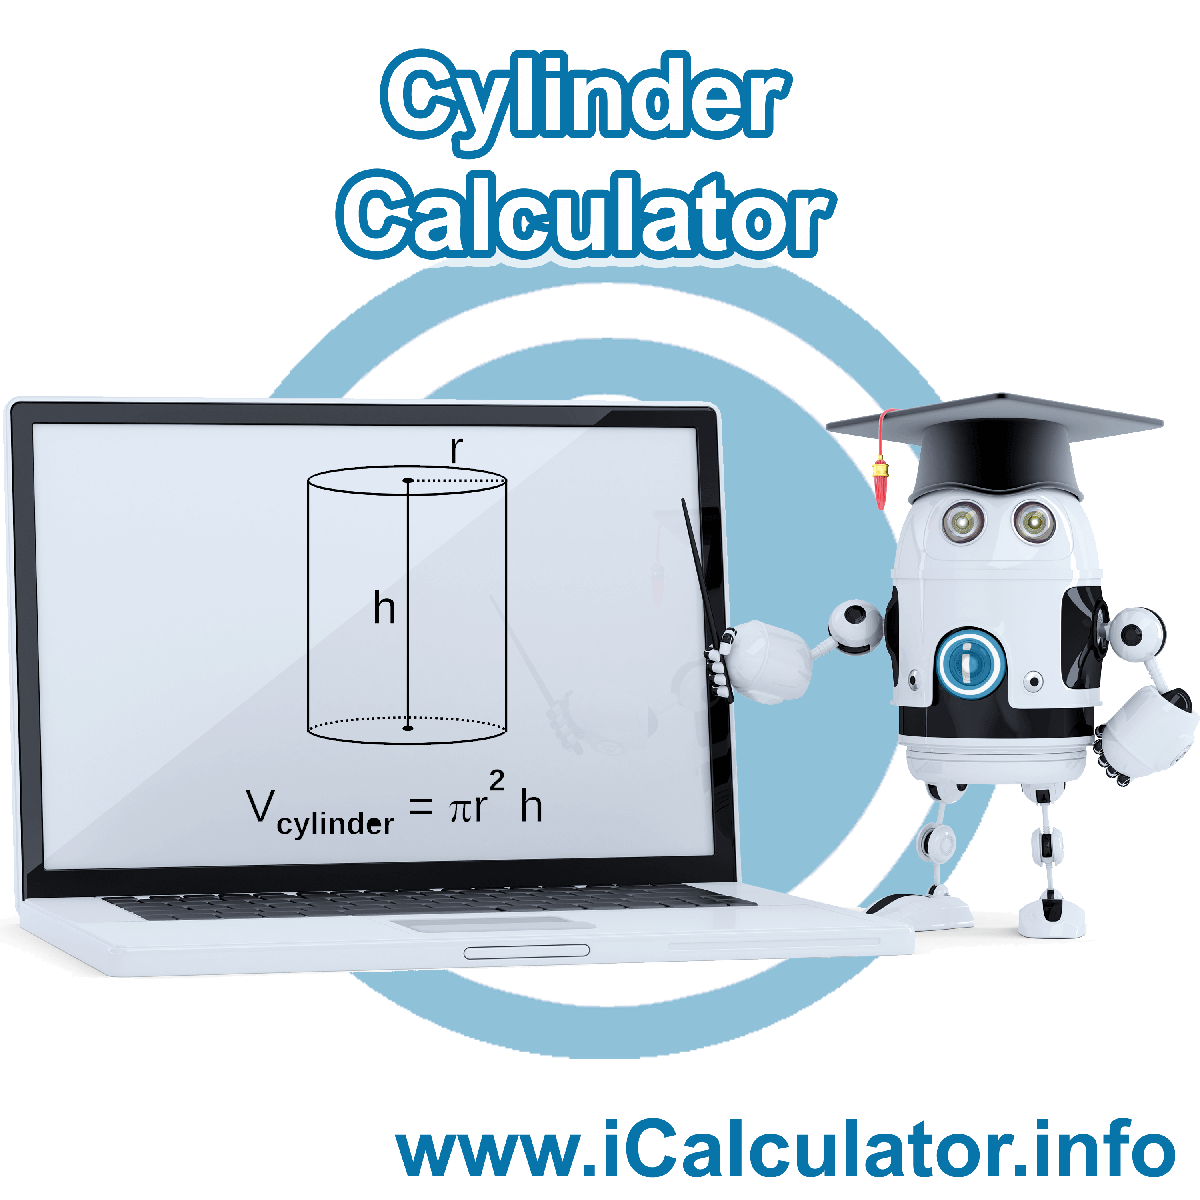 Cylinder Calculator. This image shows the properties and formula for the Cylinder Calculator